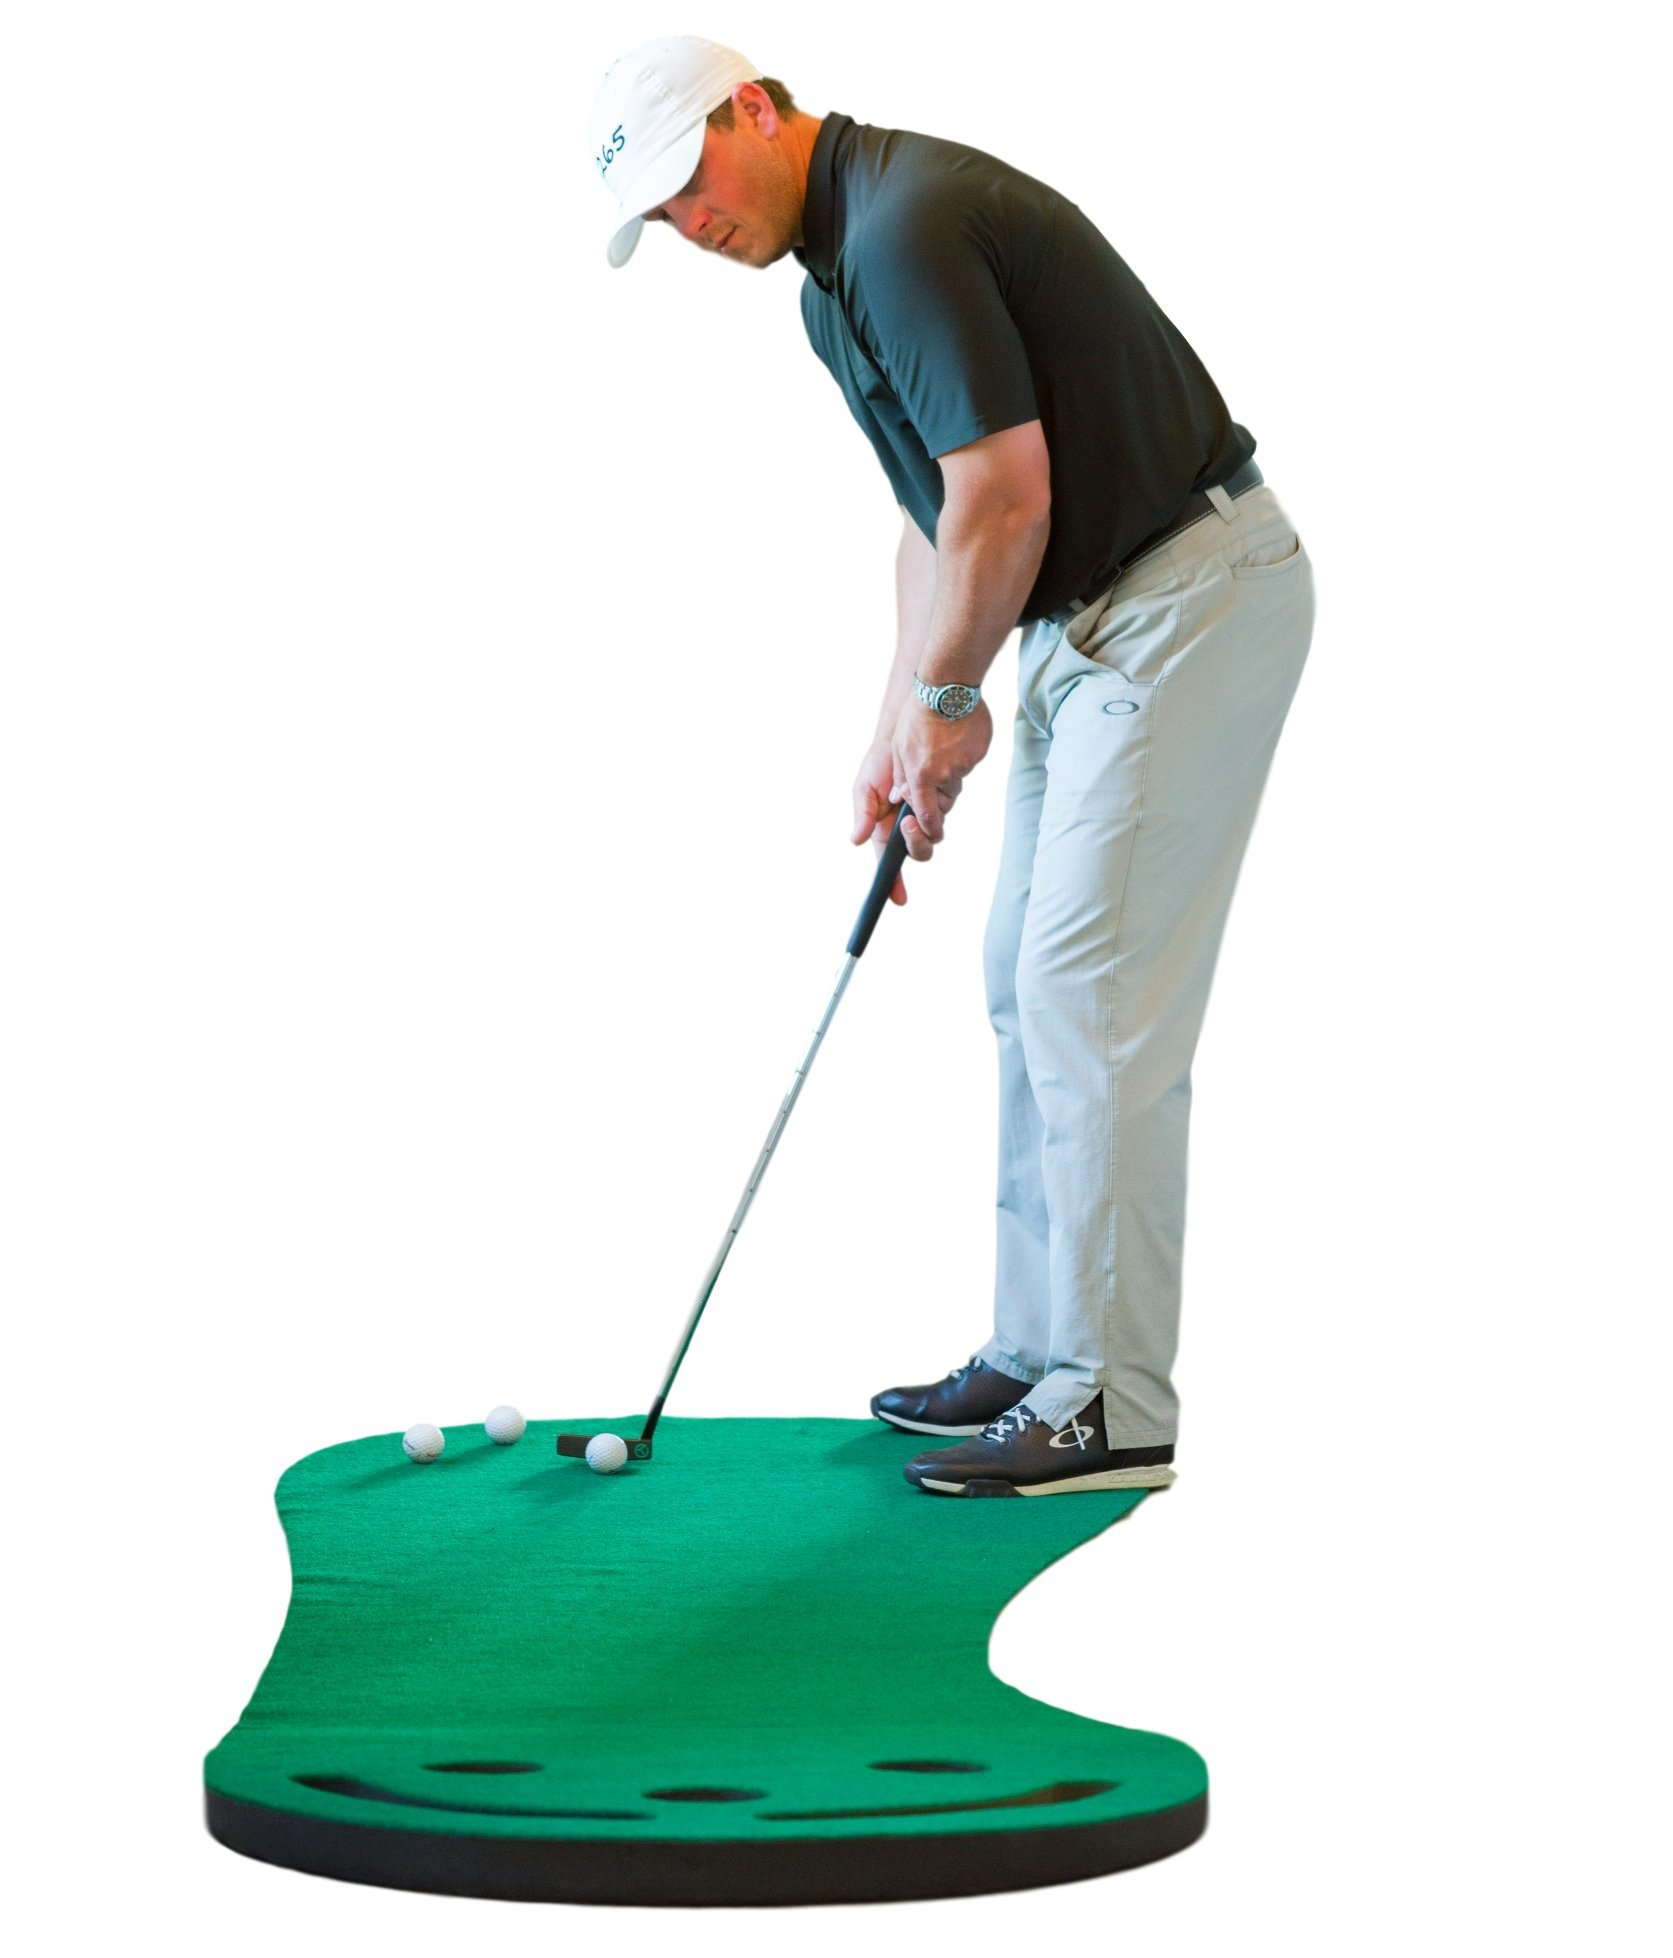 Shaun Webb's Golf Putting Green & Indoor Mat 9'x3' (Golf Digest's Top Teacher) Premium Backing, Thicker & Wider Surface